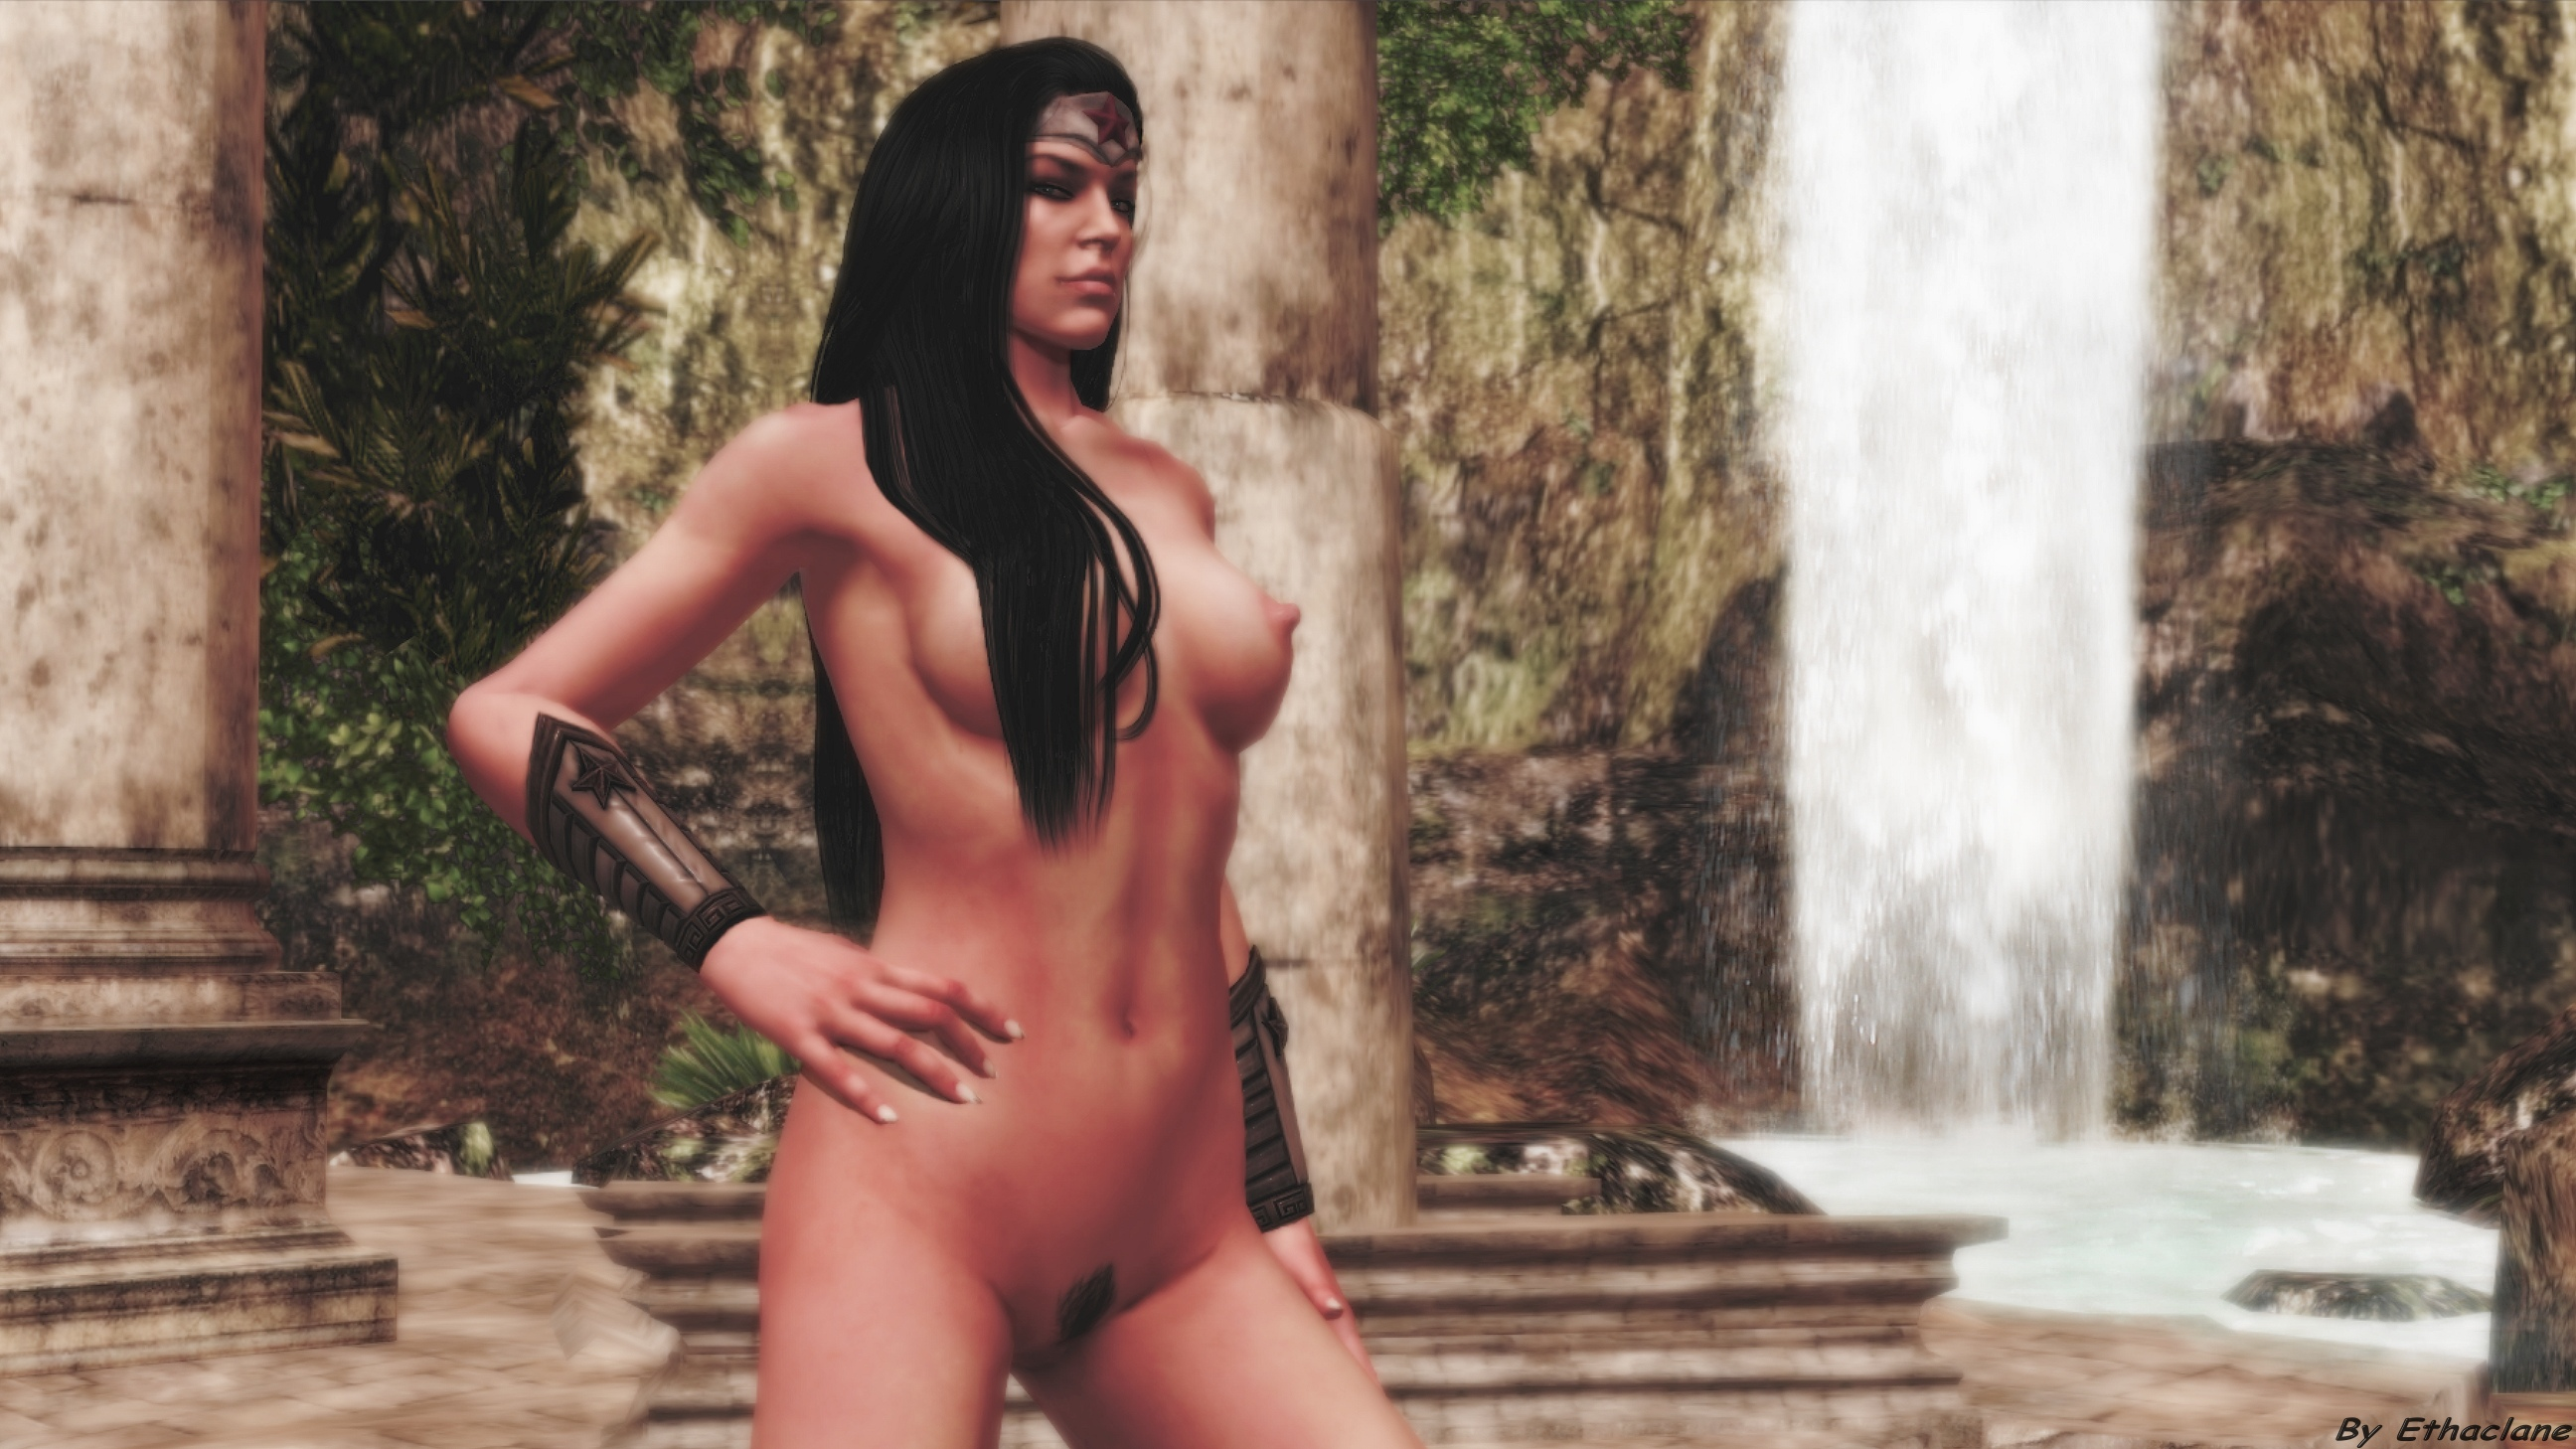 Wonder woman 3d model naked exposed galleries